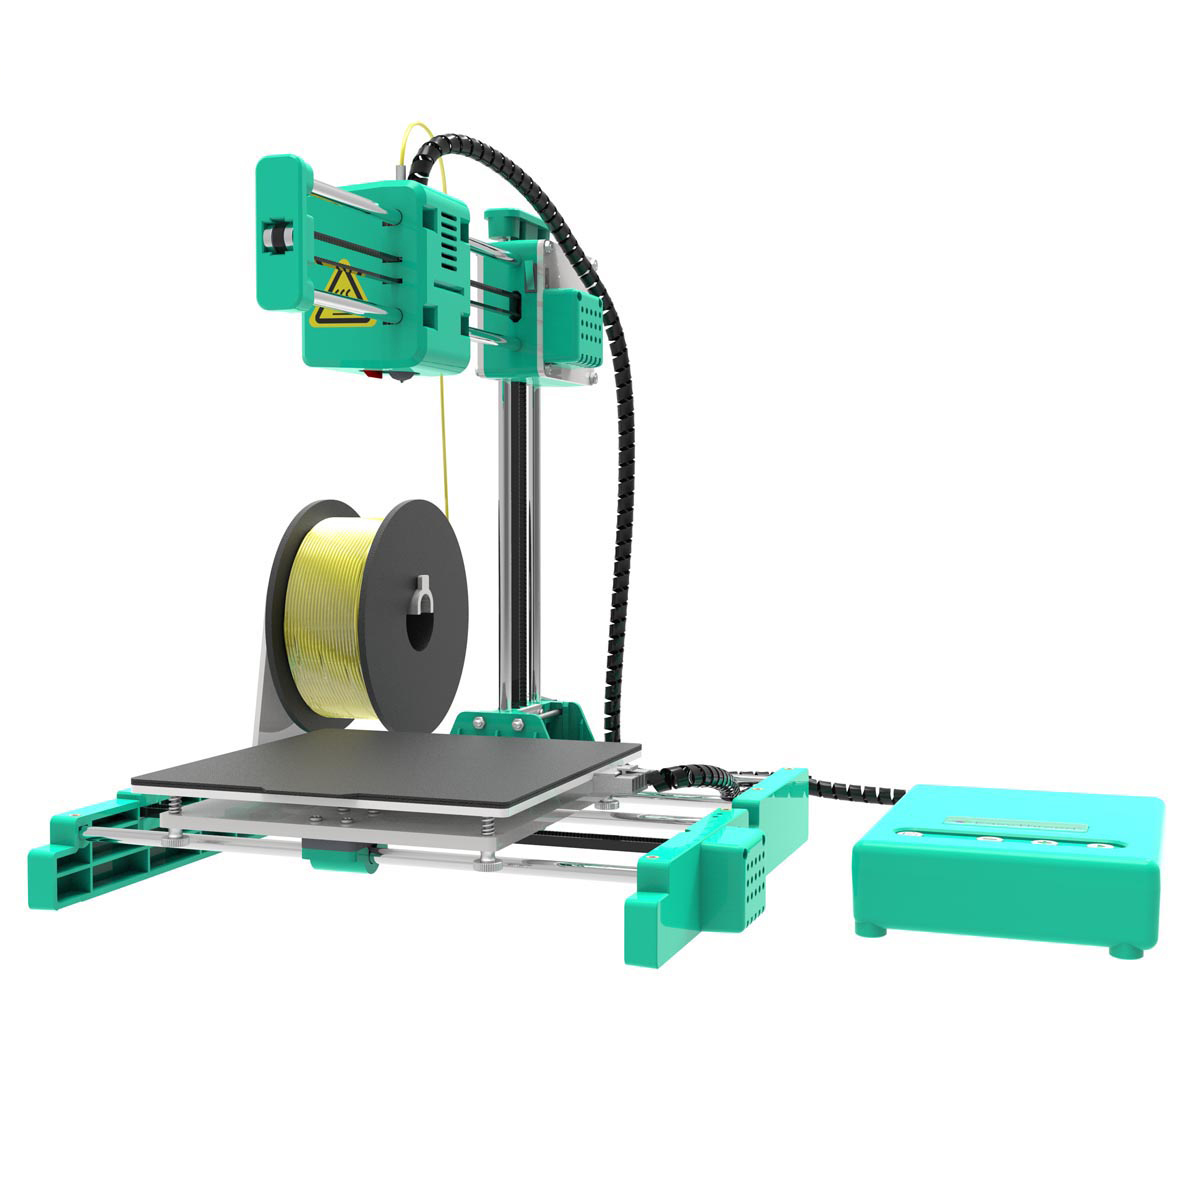 Easythreed® X3 Desktop MIni 3D Printer 150*150*150mm Printing Size with Hotbed